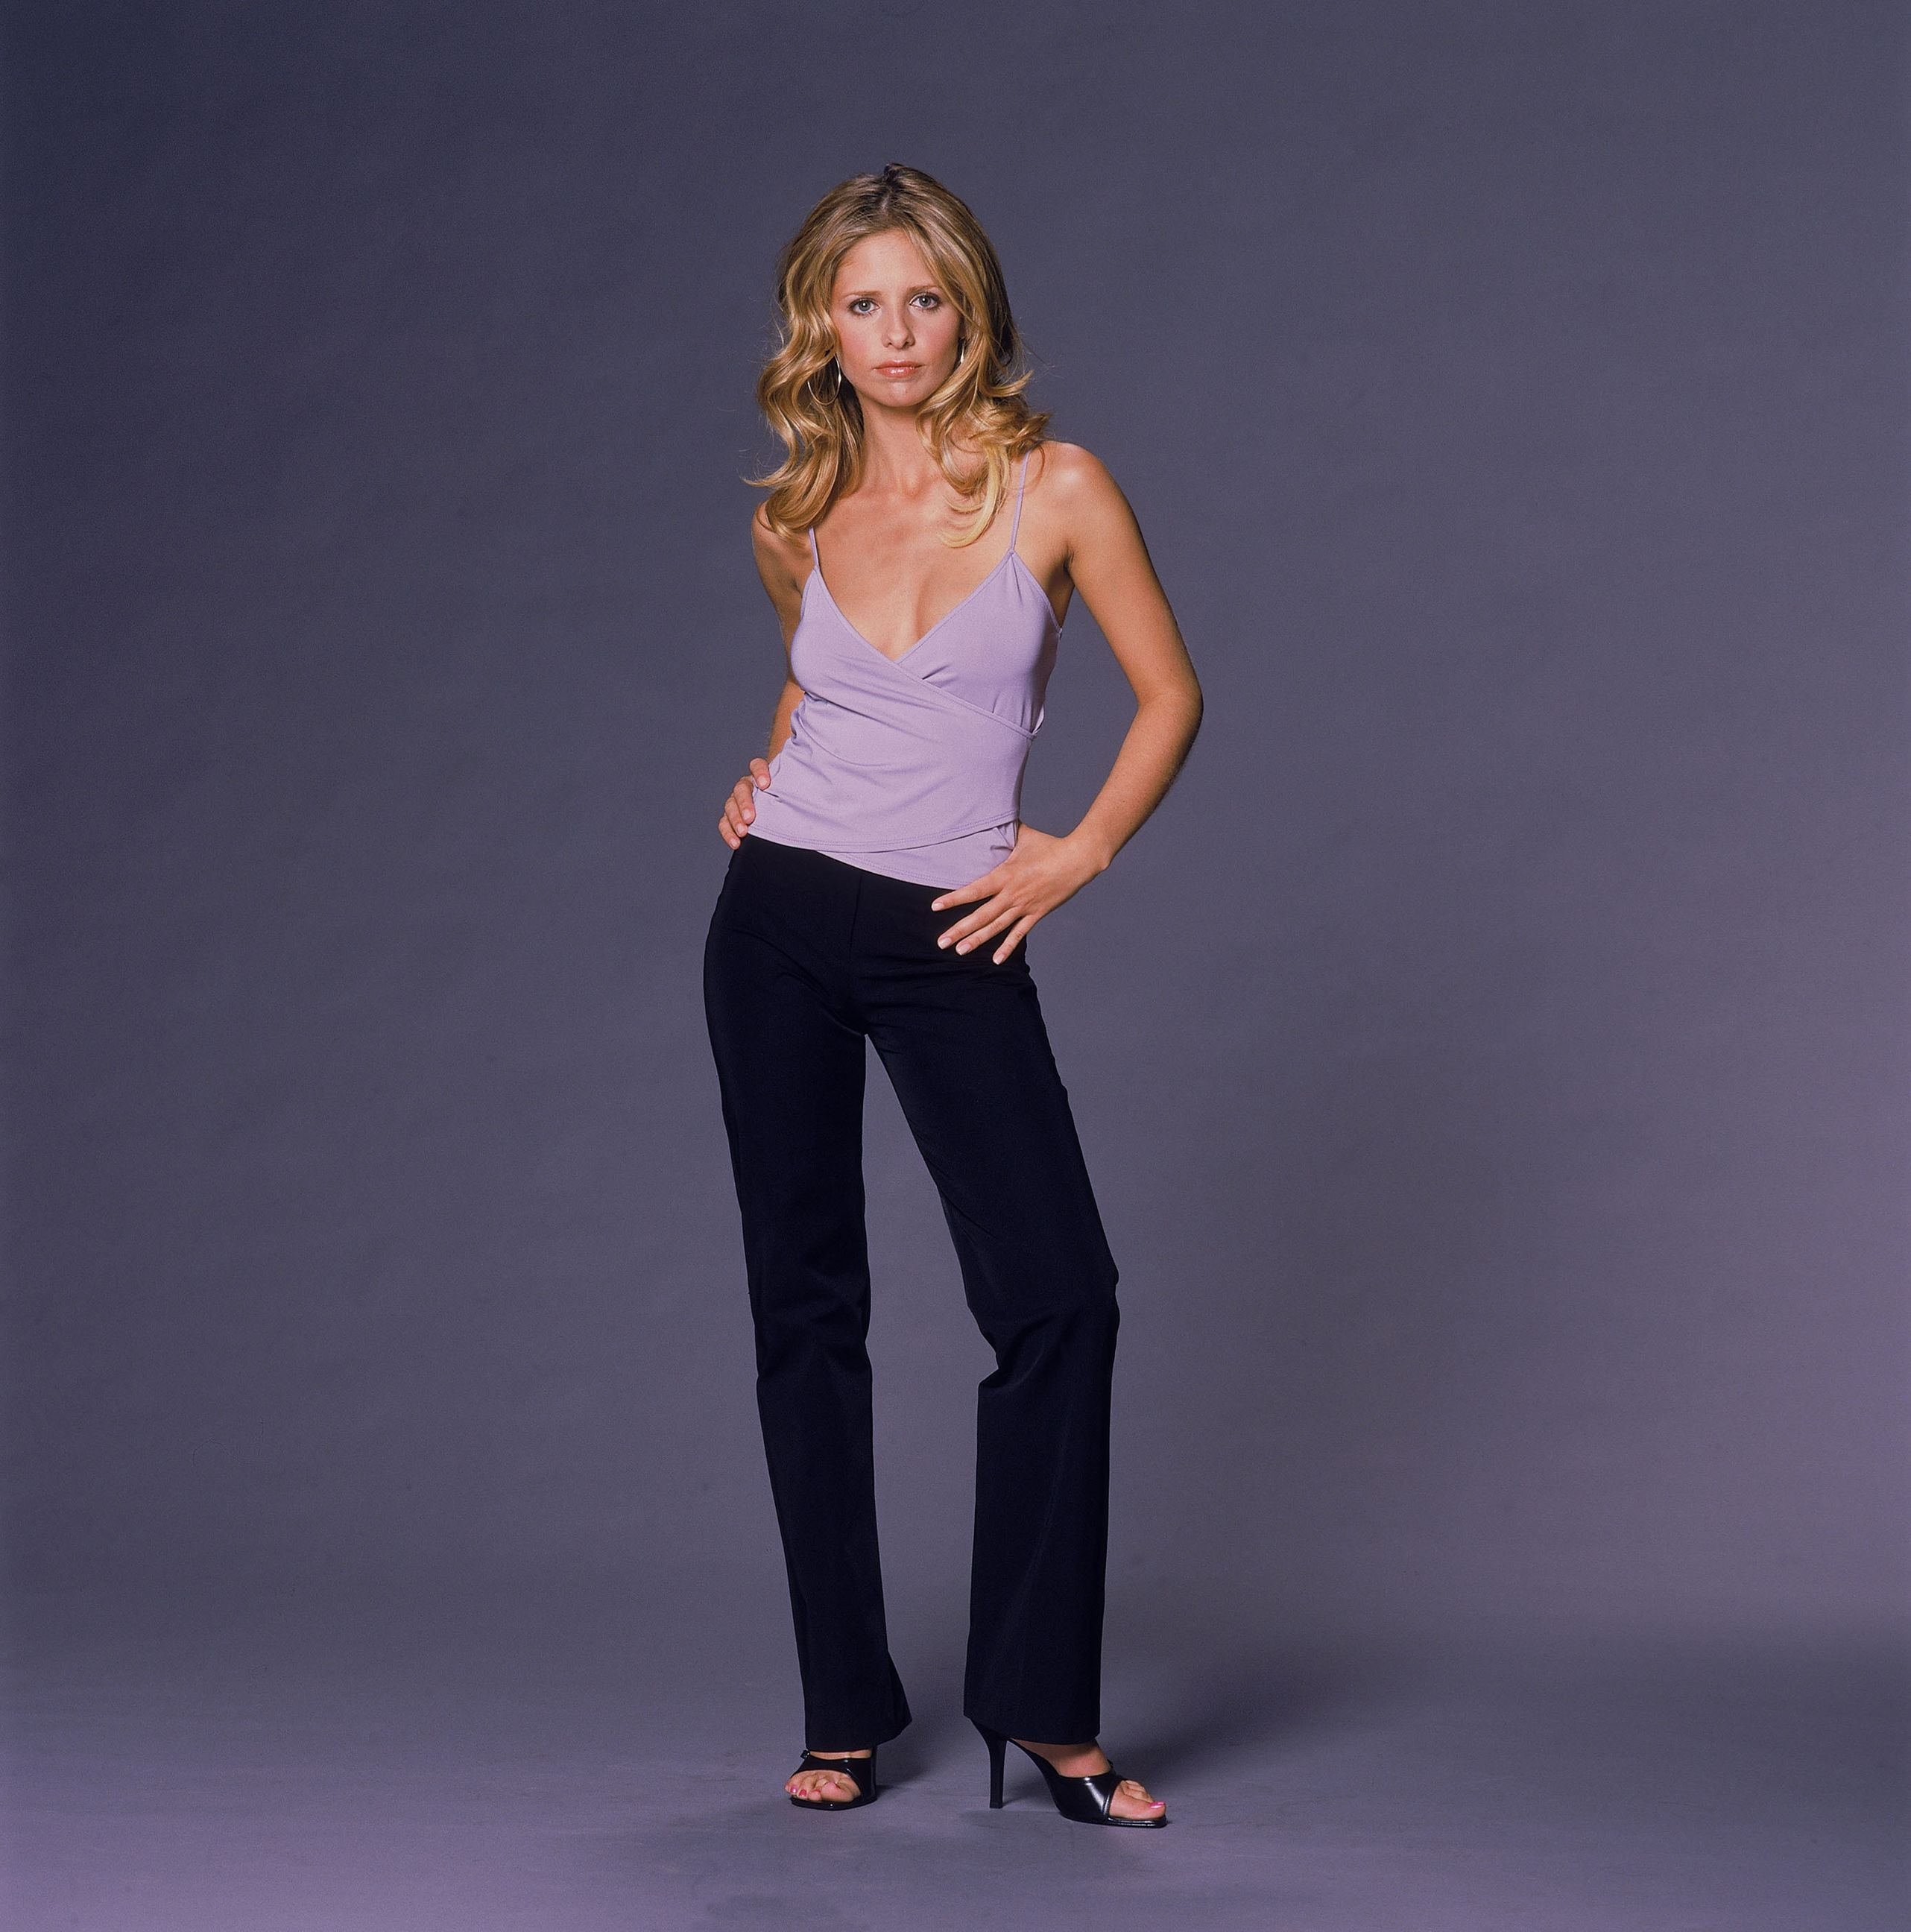 Wallpapers For 11 Year Old Girls Buffy The Vampire Slayer Gallery 9 10 Dvdbash